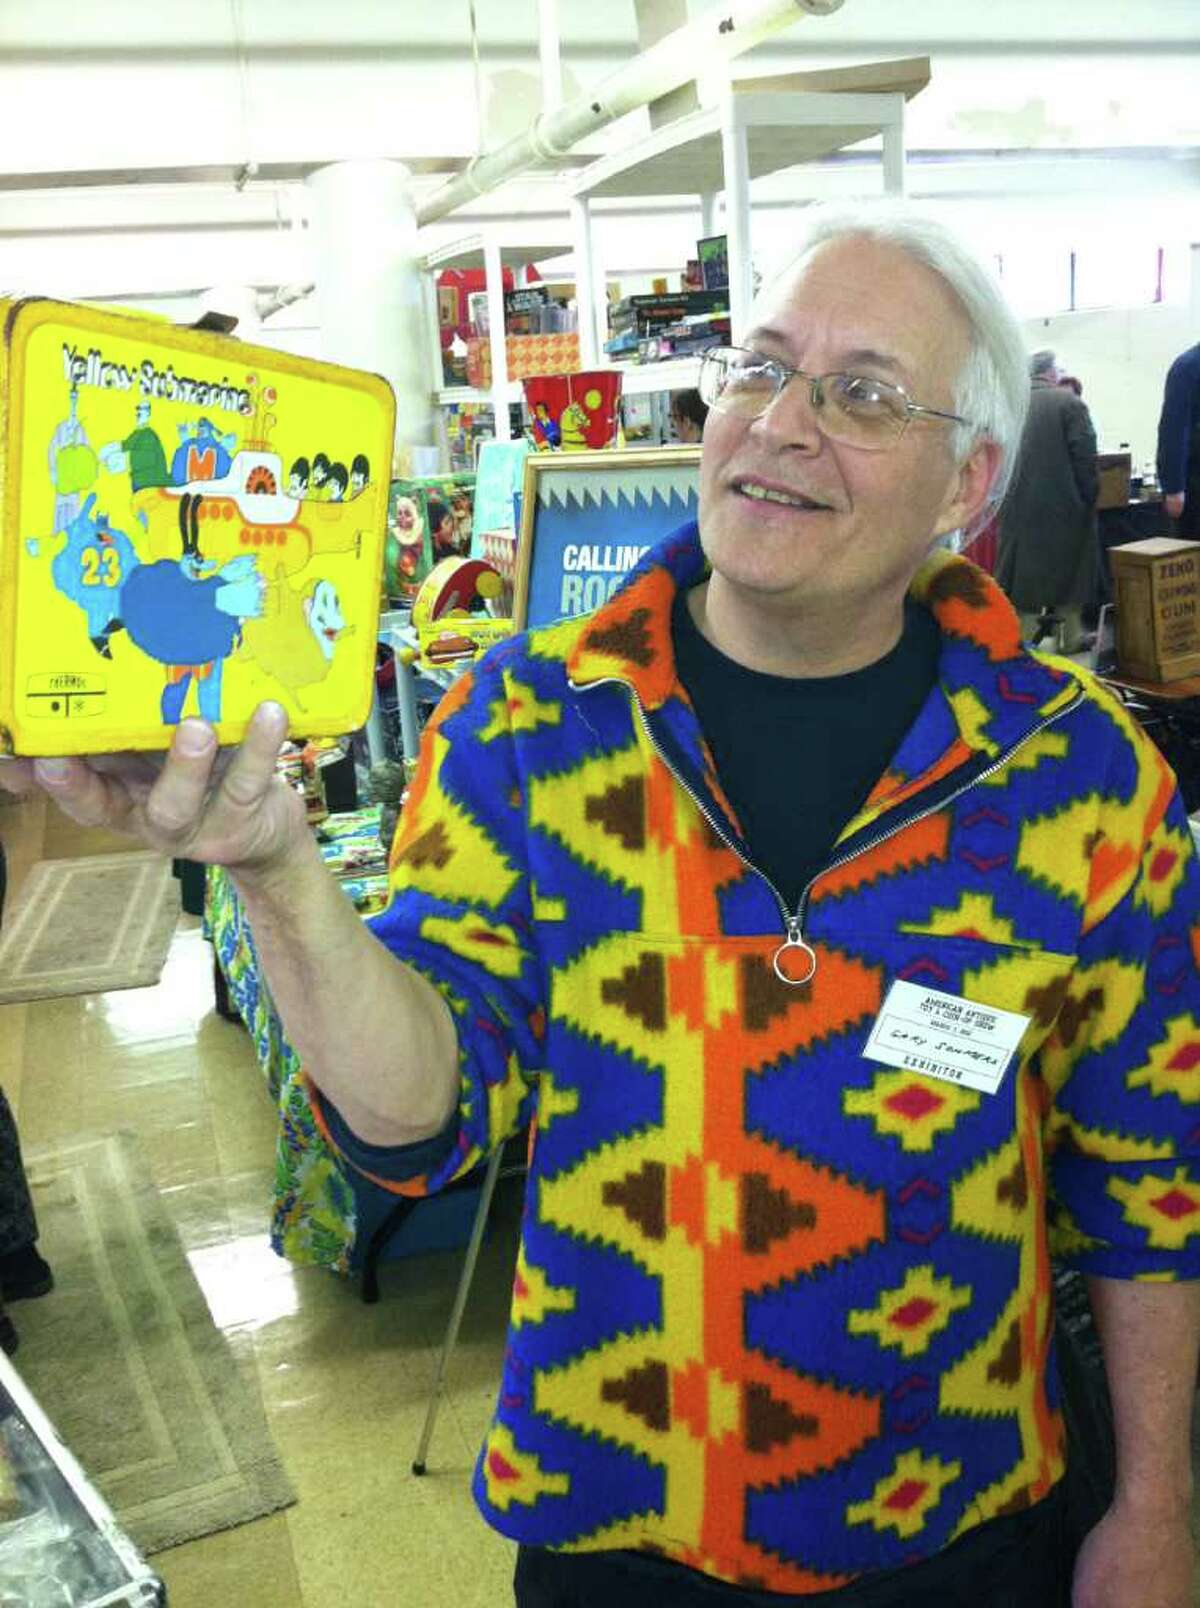 """Gary Sohmers, of Hudson, Mass., holds a lunch box decorated with the Beatles Yellow Submarine Saturday at an antique toys and coin-operated arcade machines show at the Eastern Greenwich Civic Center. Sohmers has appeared as an appraiser on the PBS television show """"Antiques Roadshow."""""""